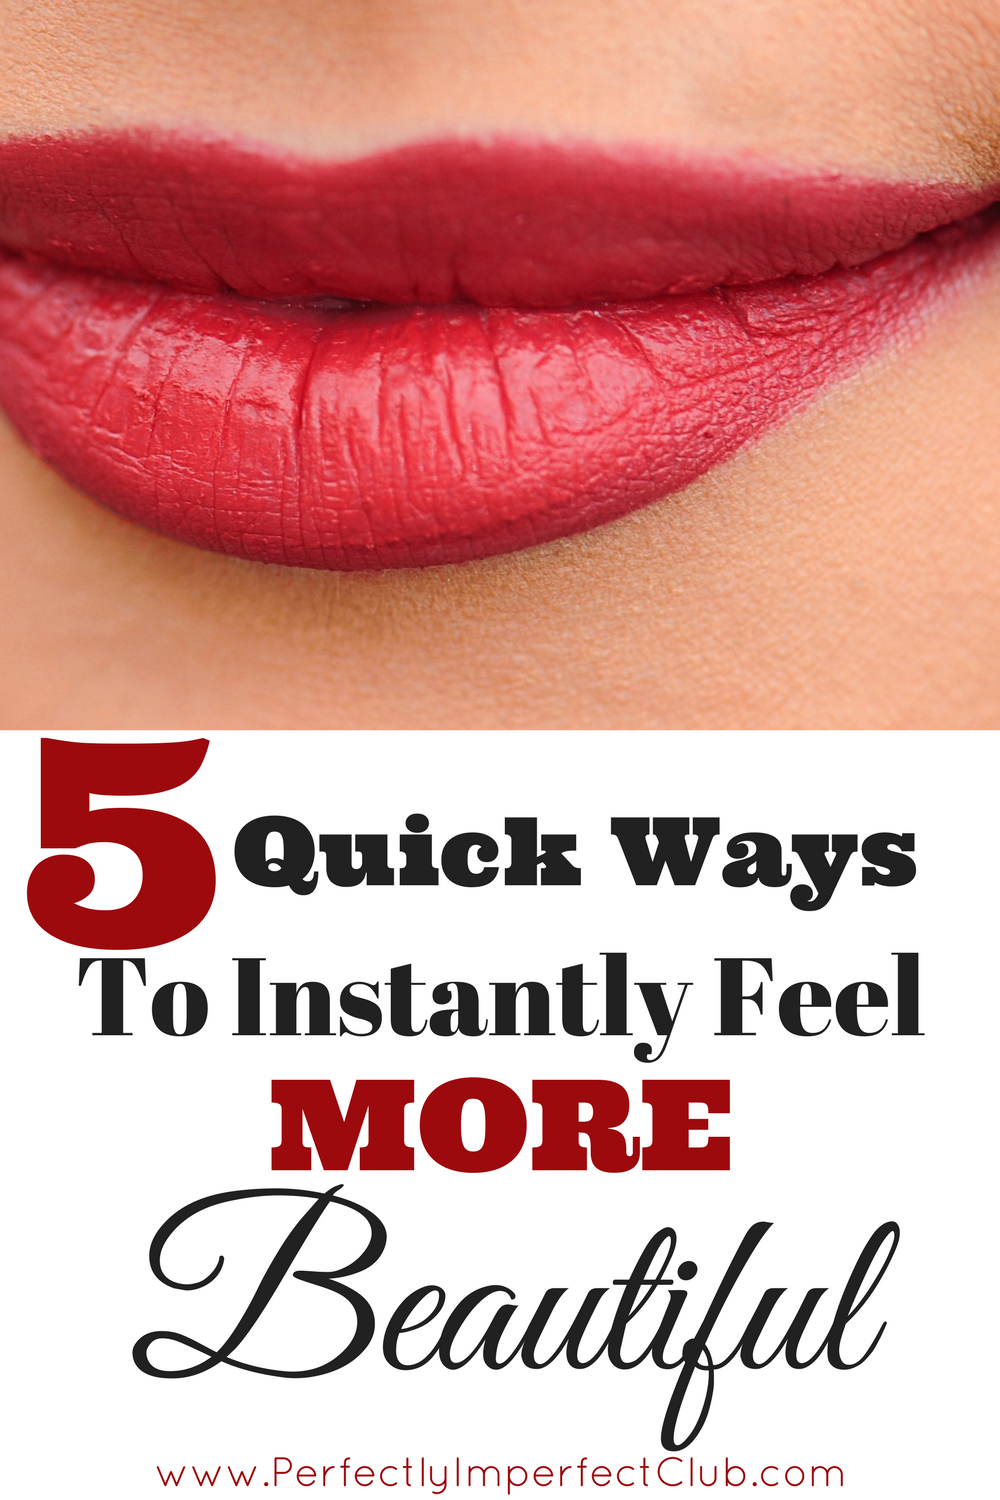 When I need a quick beauty boost in the afternoon, I pick one or two of these tips! I feel more beautiful in no time!